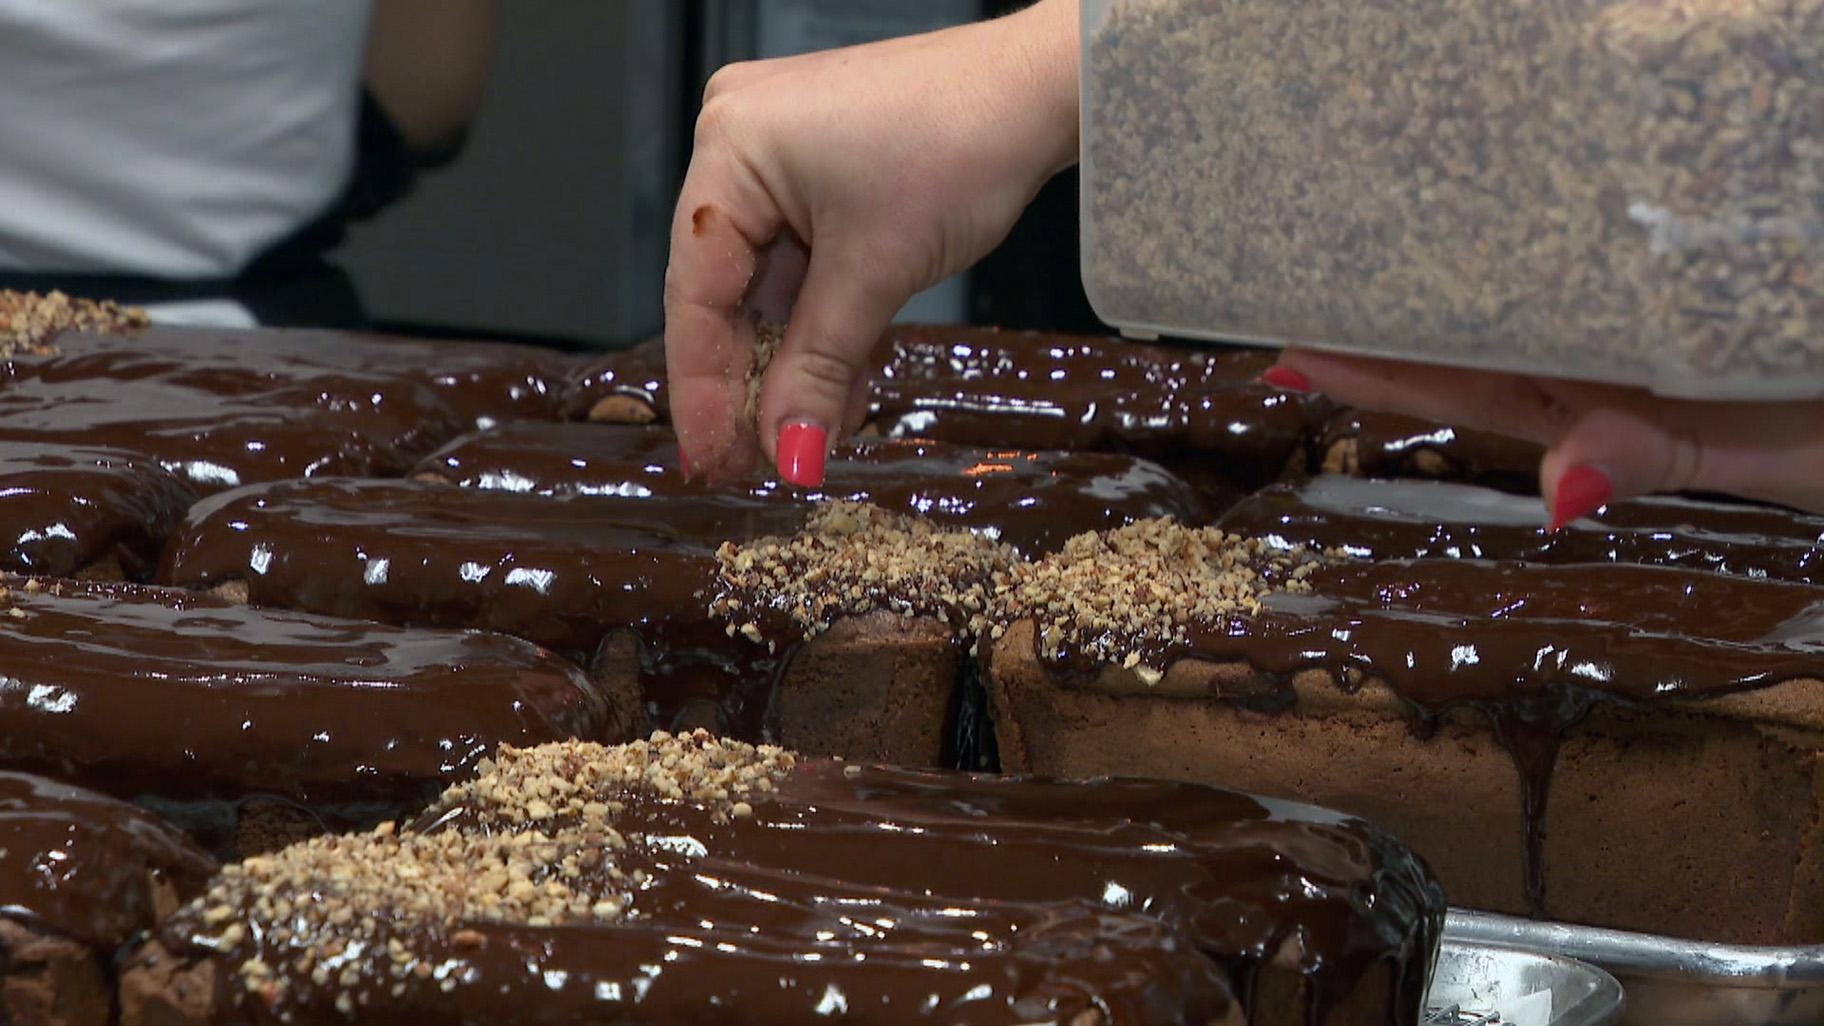 Flourless chocolate cake is a familiar dessert for many Jewish Chicagoans during Passover, when only unleavened bread is allowed on the table. (WTTW News)